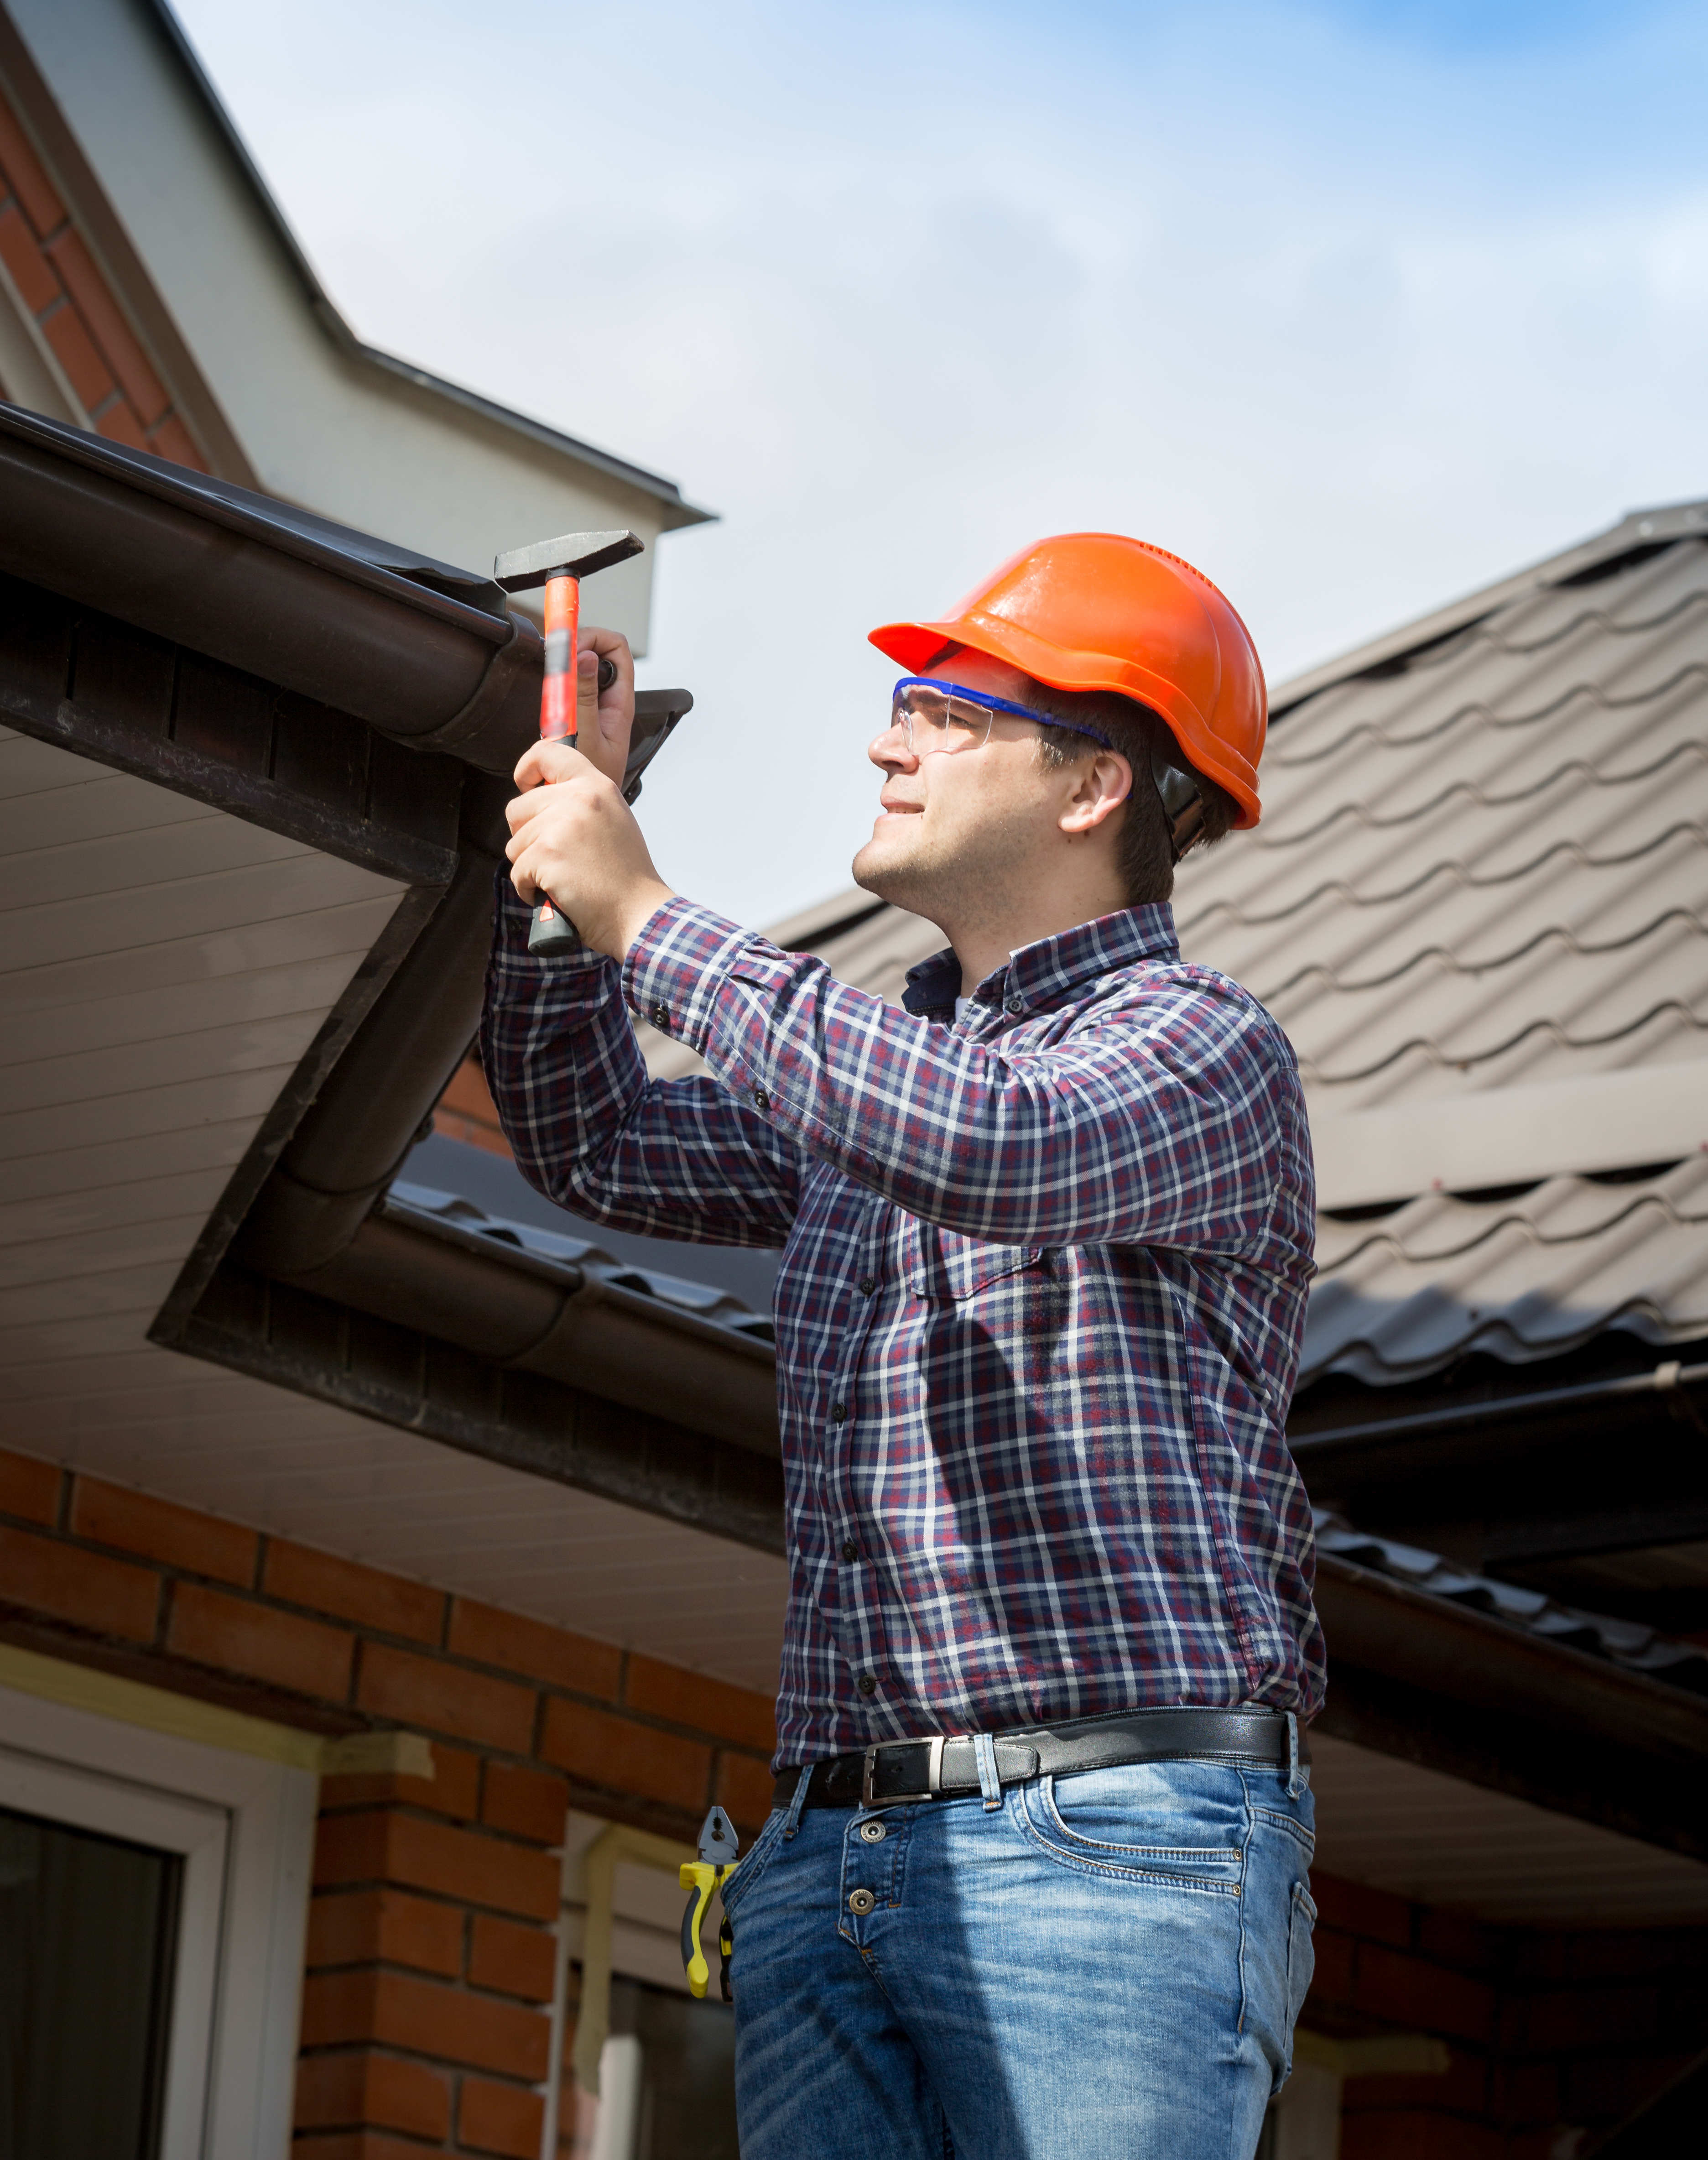 repairman-repairing-inspecting-house-for-roof-replacement-content-image.